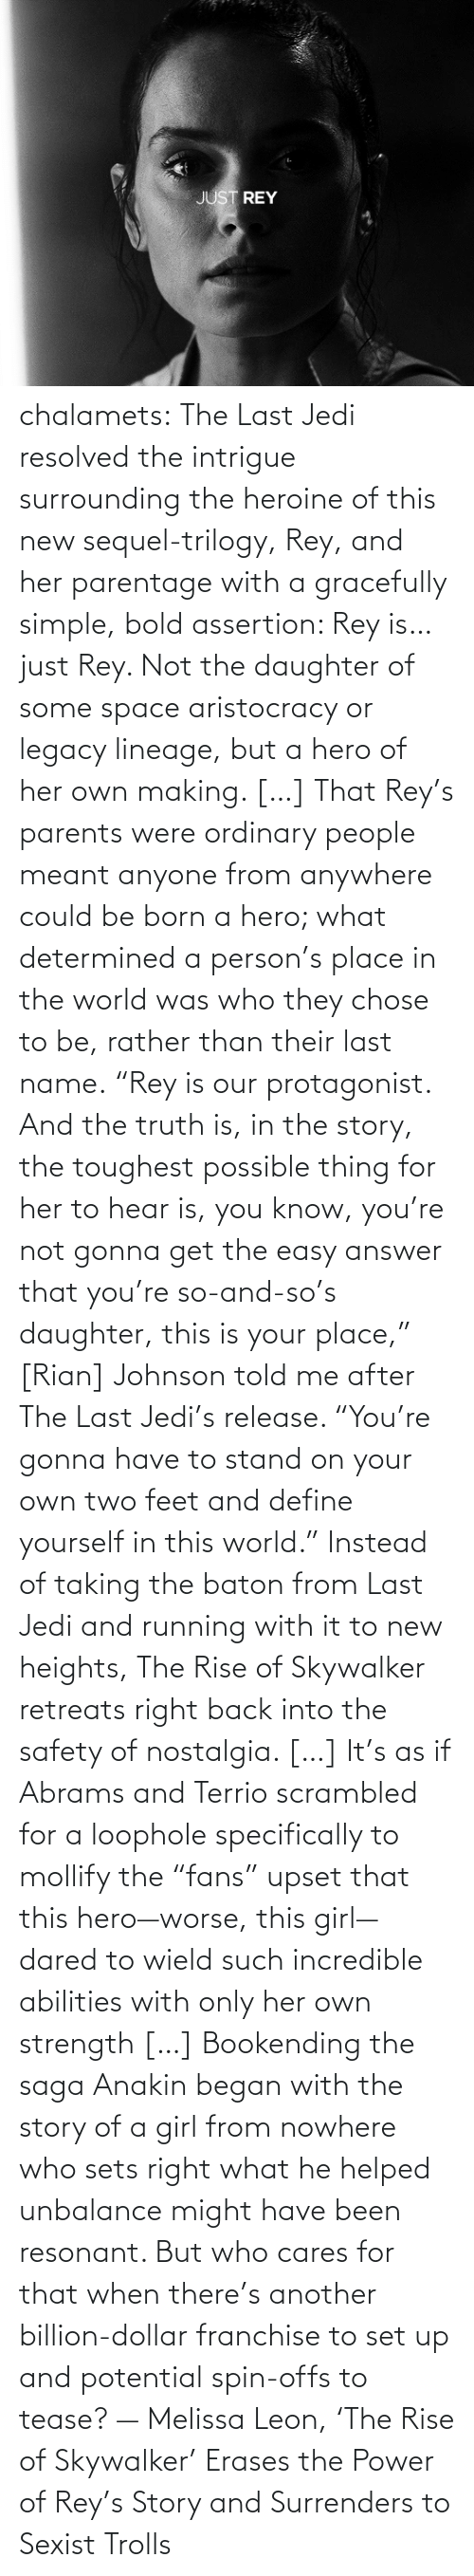 "stand: chalamets:  The Last Jedi resolved the intrigue surrounding the heroine of this new sequel-trilogy, Rey, and her parentage with a gracefully simple, bold assertion: Rey is… just Rey. Not the daughter of some space aristocracy or legacy lineage, but a hero of her own making. […] That Rey's parents were ordinary people meant anyone from anywhere could be born a hero; what determined a person's place in the world was who they chose to be, rather than their last name. ""Rey is our protagonist. And the truth is, in the story, the toughest possible thing for her to hear is, you know, you're not gonna get the easy answer that you're so-and-so's daughter, this is your place,"" [Rian] Johnson told me after The Last Jedi's release. ""You're gonna have to stand on your own two feet and define yourself in this world."" Instead of taking the baton from Last Jedi and running with it to new heights, The Rise of Skywalker retreats right back into the safety of nostalgia. […] It's as if Abrams and Terrio scrambled for a loophole specifically to mollify the ""fans"" upset that this hero—worse, this girl—dared to wield such incredible abilities with only her own strength […] Bookending the saga Anakin began with the story of a girl from nowhere who sets right what he helped unbalance might have been resonant. But who cares for that when there's another billion-dollar franchise to set up and potential spin-offs to tease? — Melissa Leon, 'The Rise of Skywalker' Erases the Power of Rey's Story and Surrenders to Sexist Trolls"